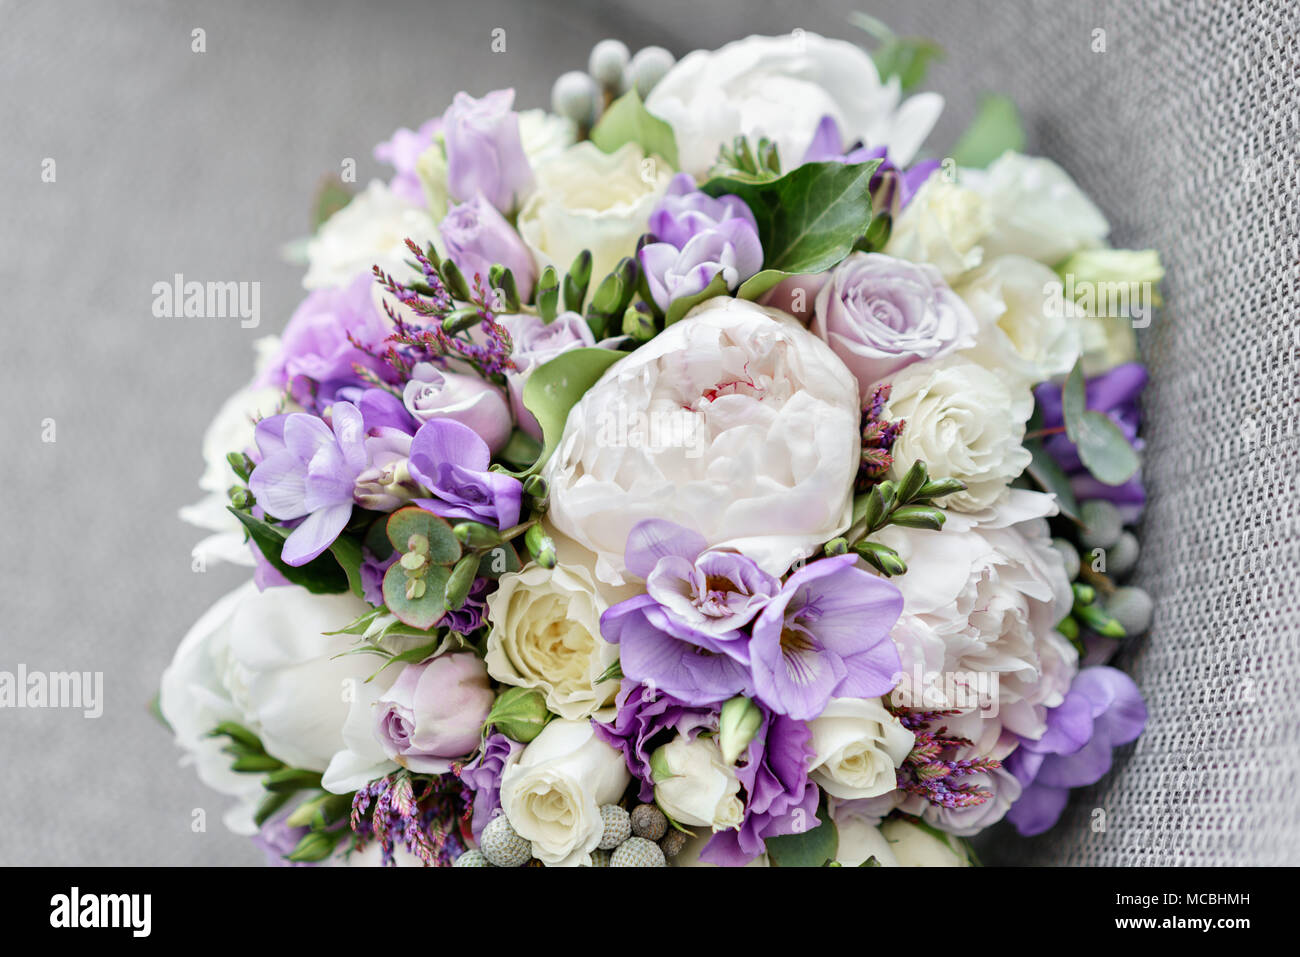 Brides wedding bouquet with peonies, freesia and other flowers on ...